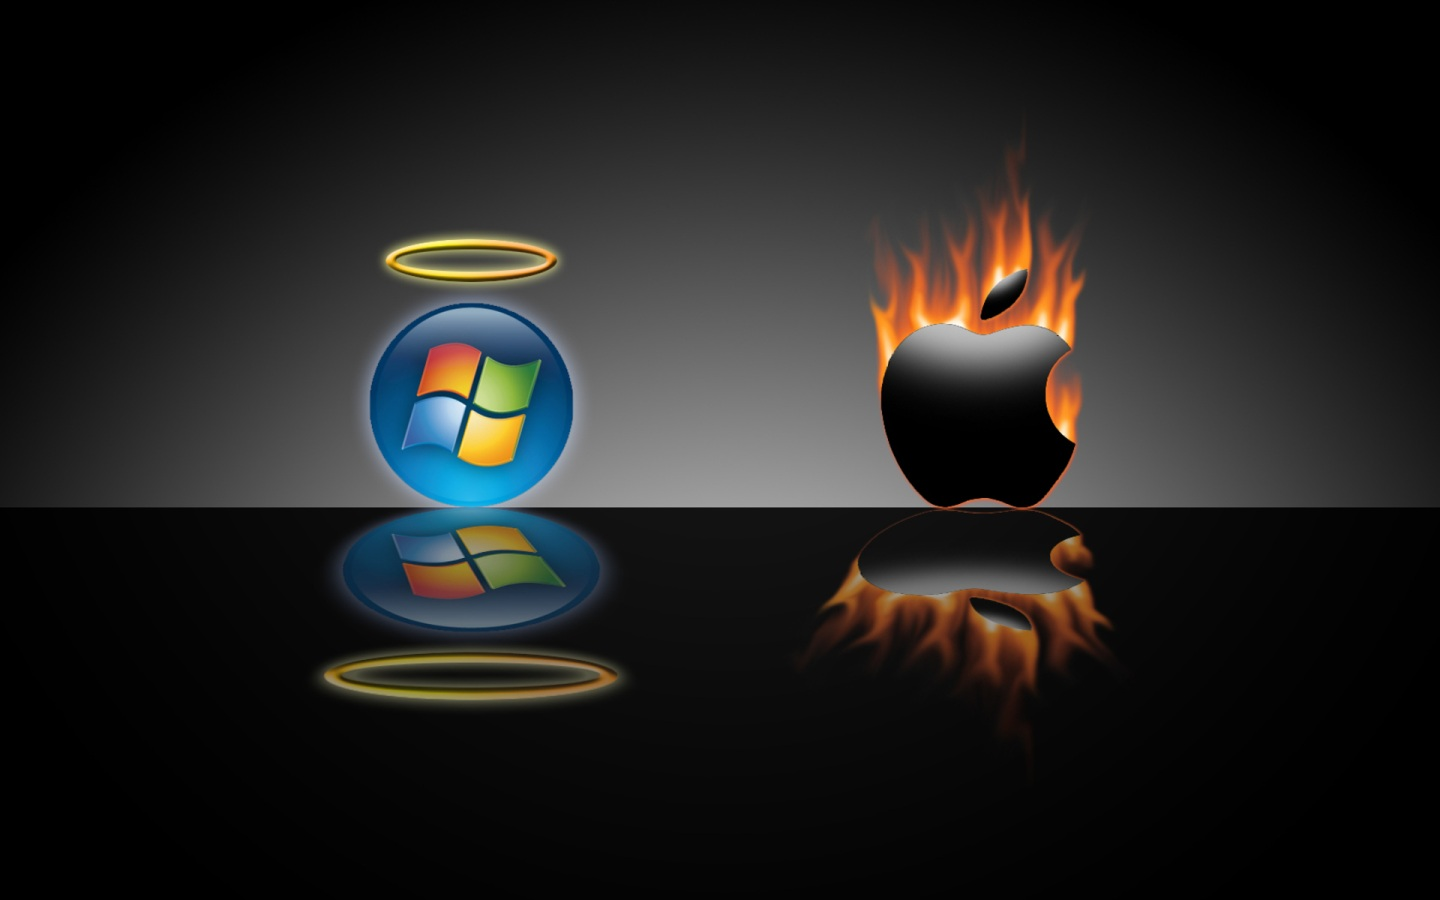 mac vs windows Find the windows 10 pc for you shop the latest computers from laptops, tablets, 2-in-1s , desktops or phones that have the latest windows 10 features like windows ink, windows hello & more.